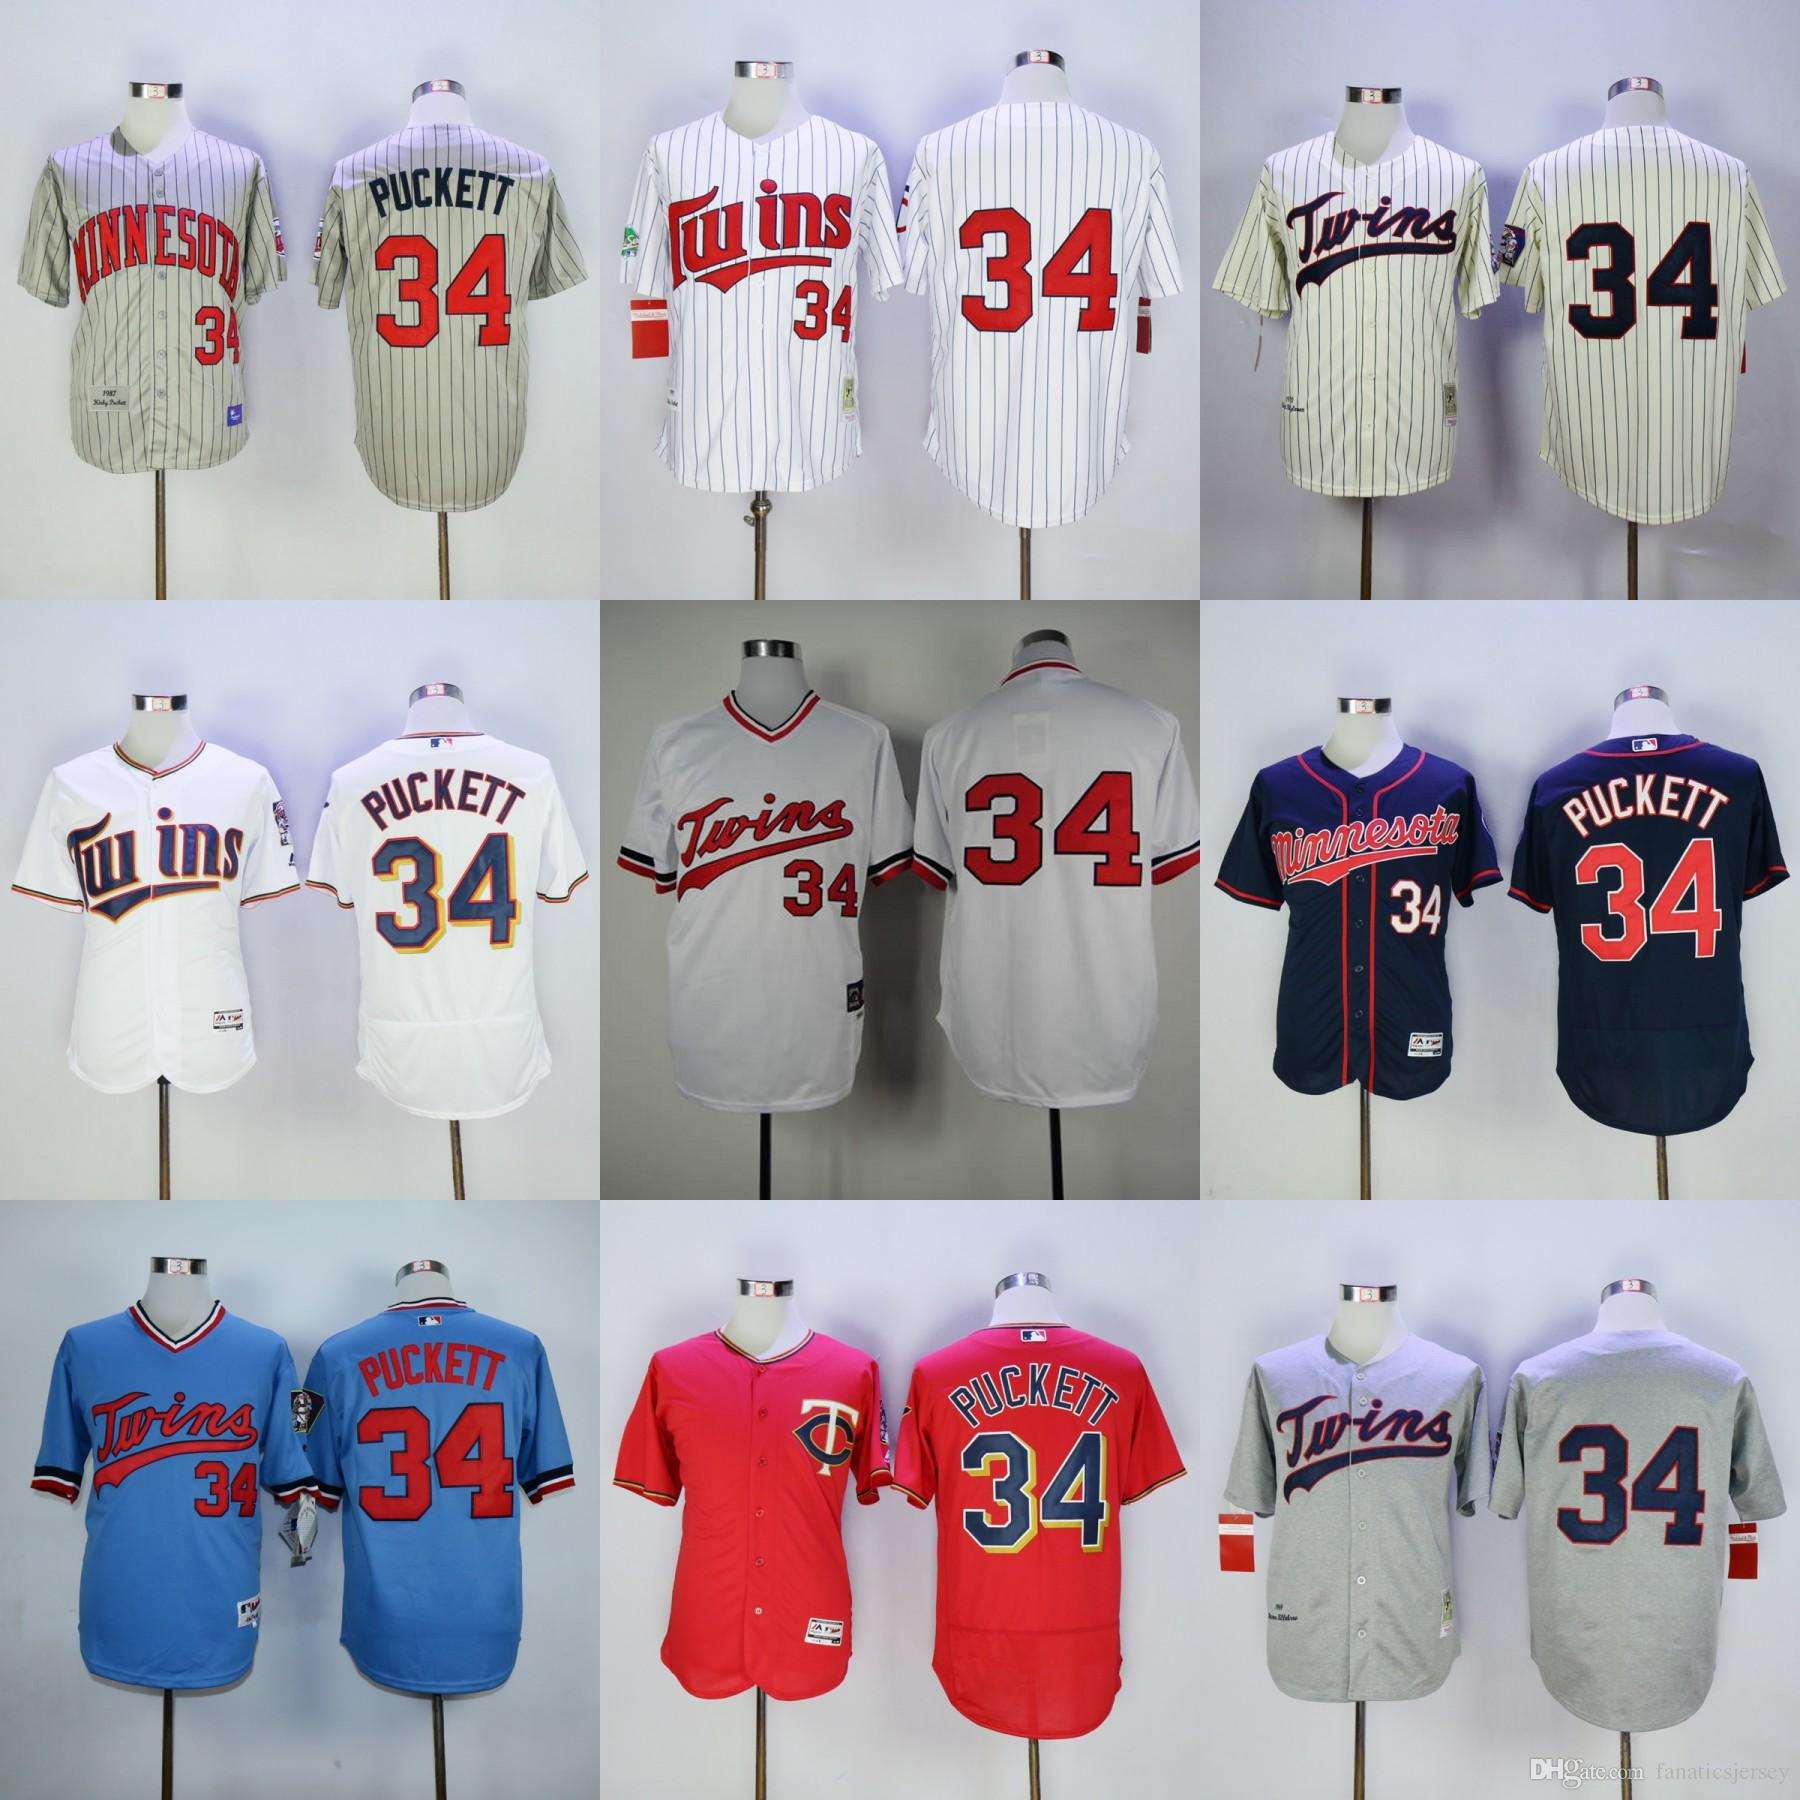 ddfb06ce189 ... clearance 2017 mens minnesota twins baseball jersey 34 kirby puckett  red white navy blue grey throwback